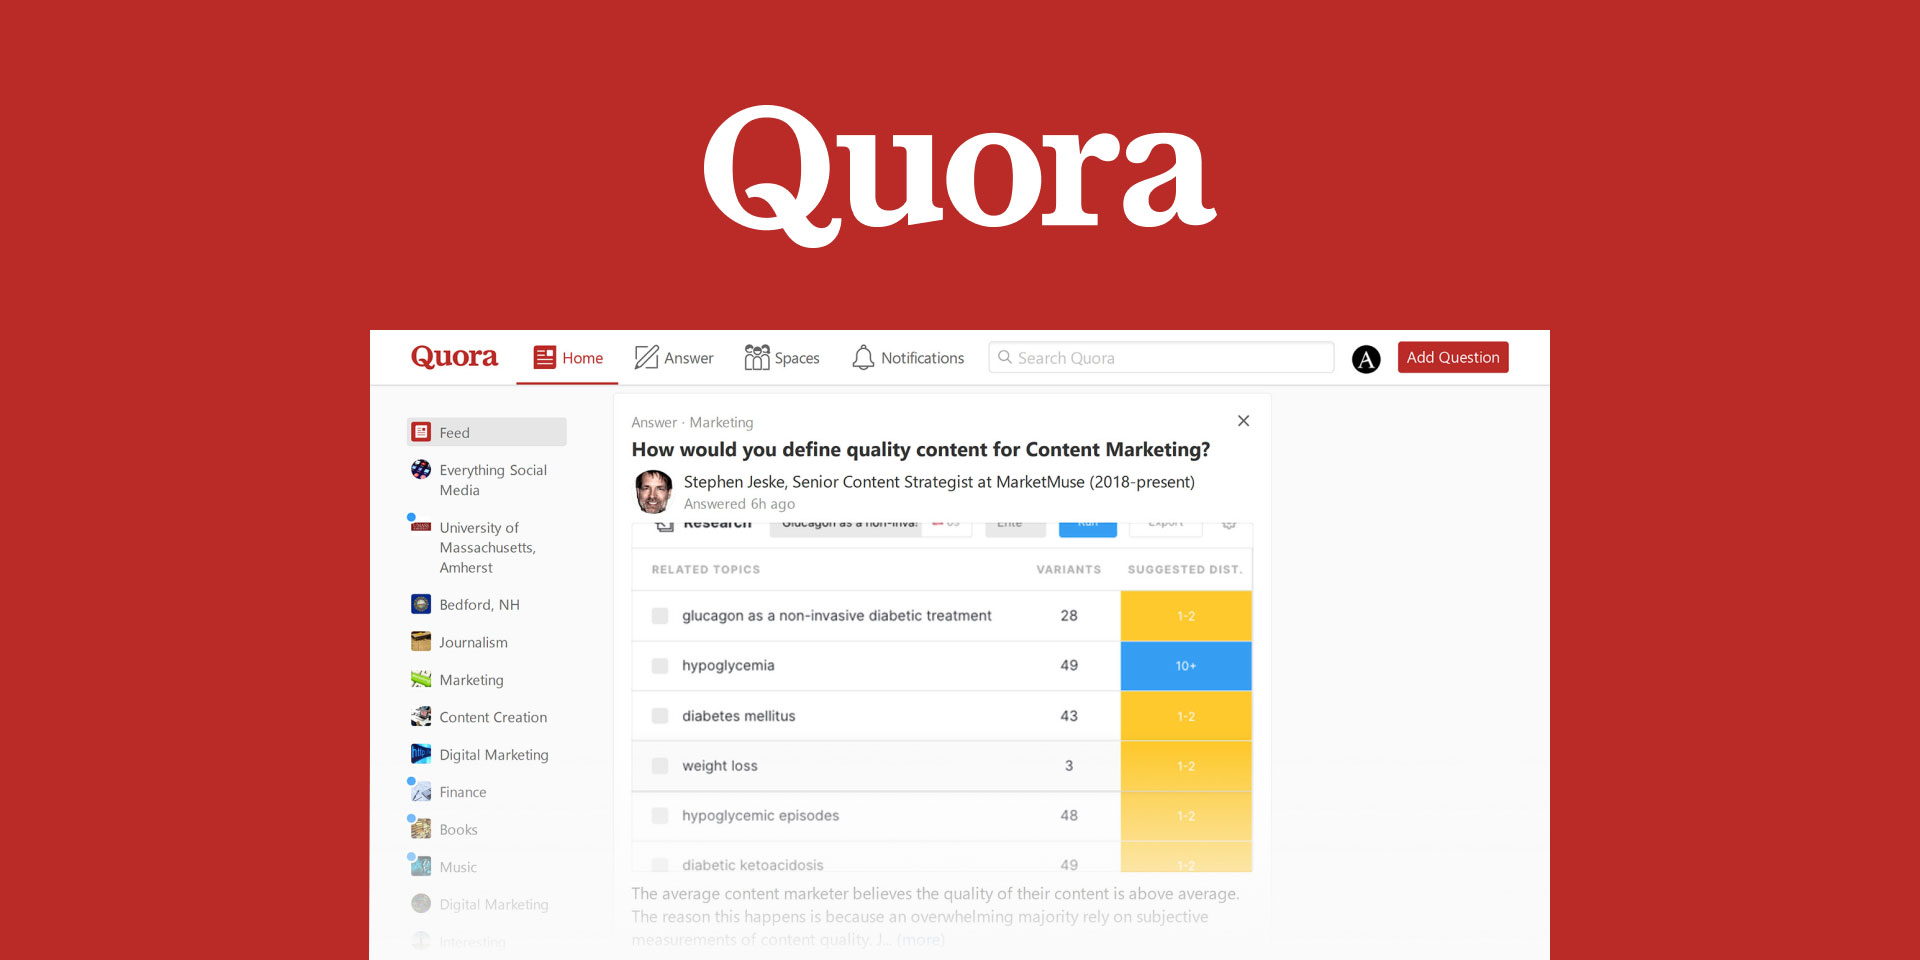 Digital Marketing on Quora